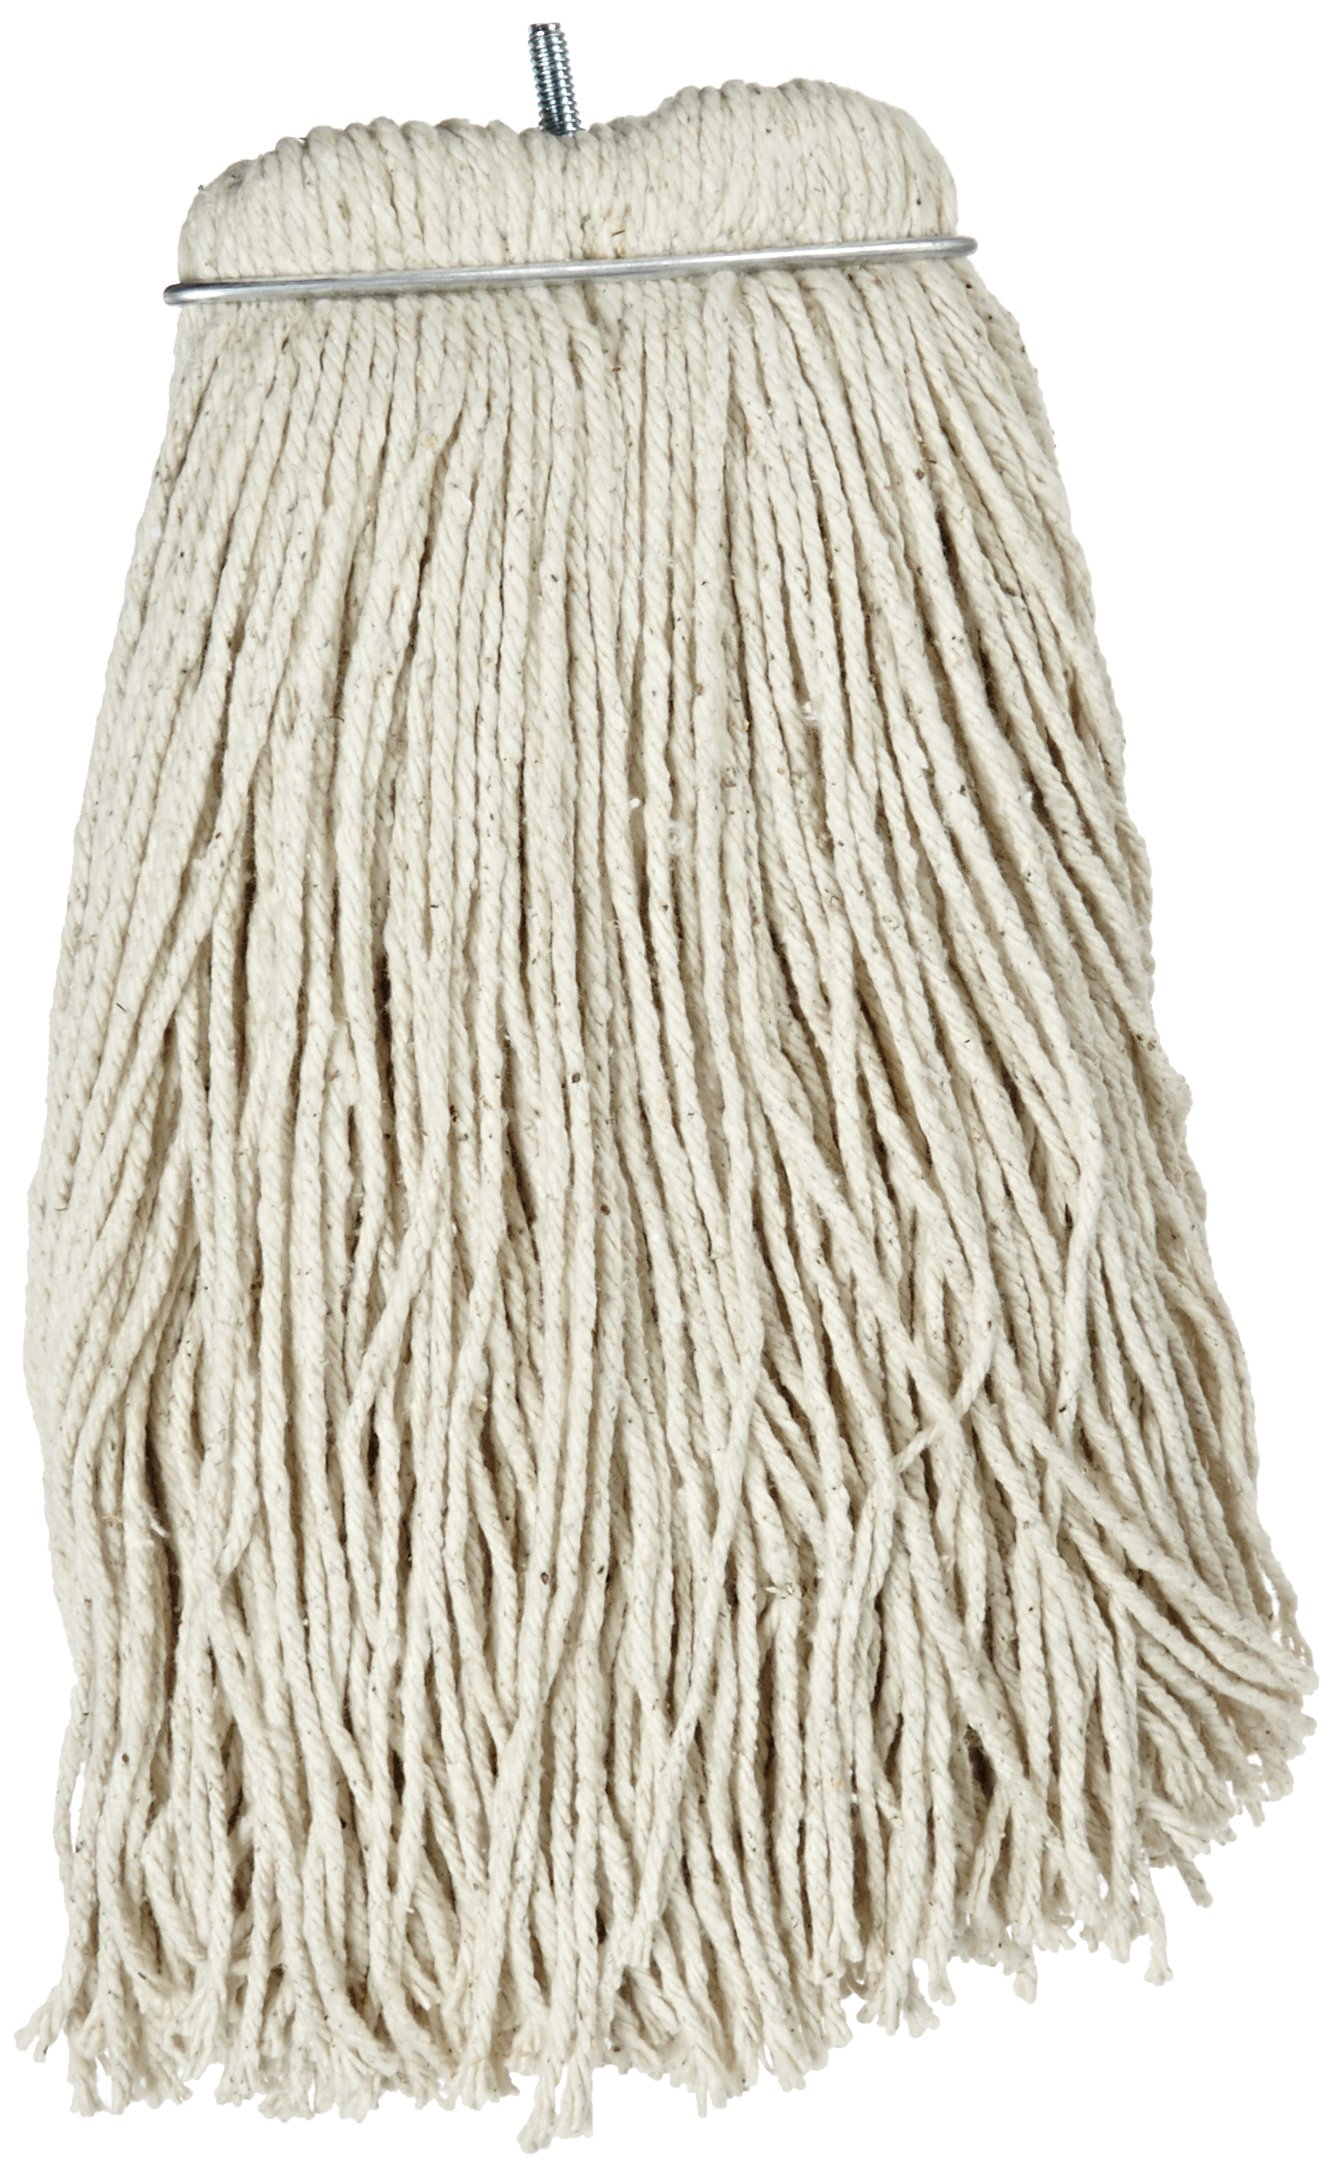 Impact 12116 Layflat Screw Type Cut End Cotton Wet Mop Head, Regular, 16 oz, White (Case of 12) by Impact Products (Image #1)